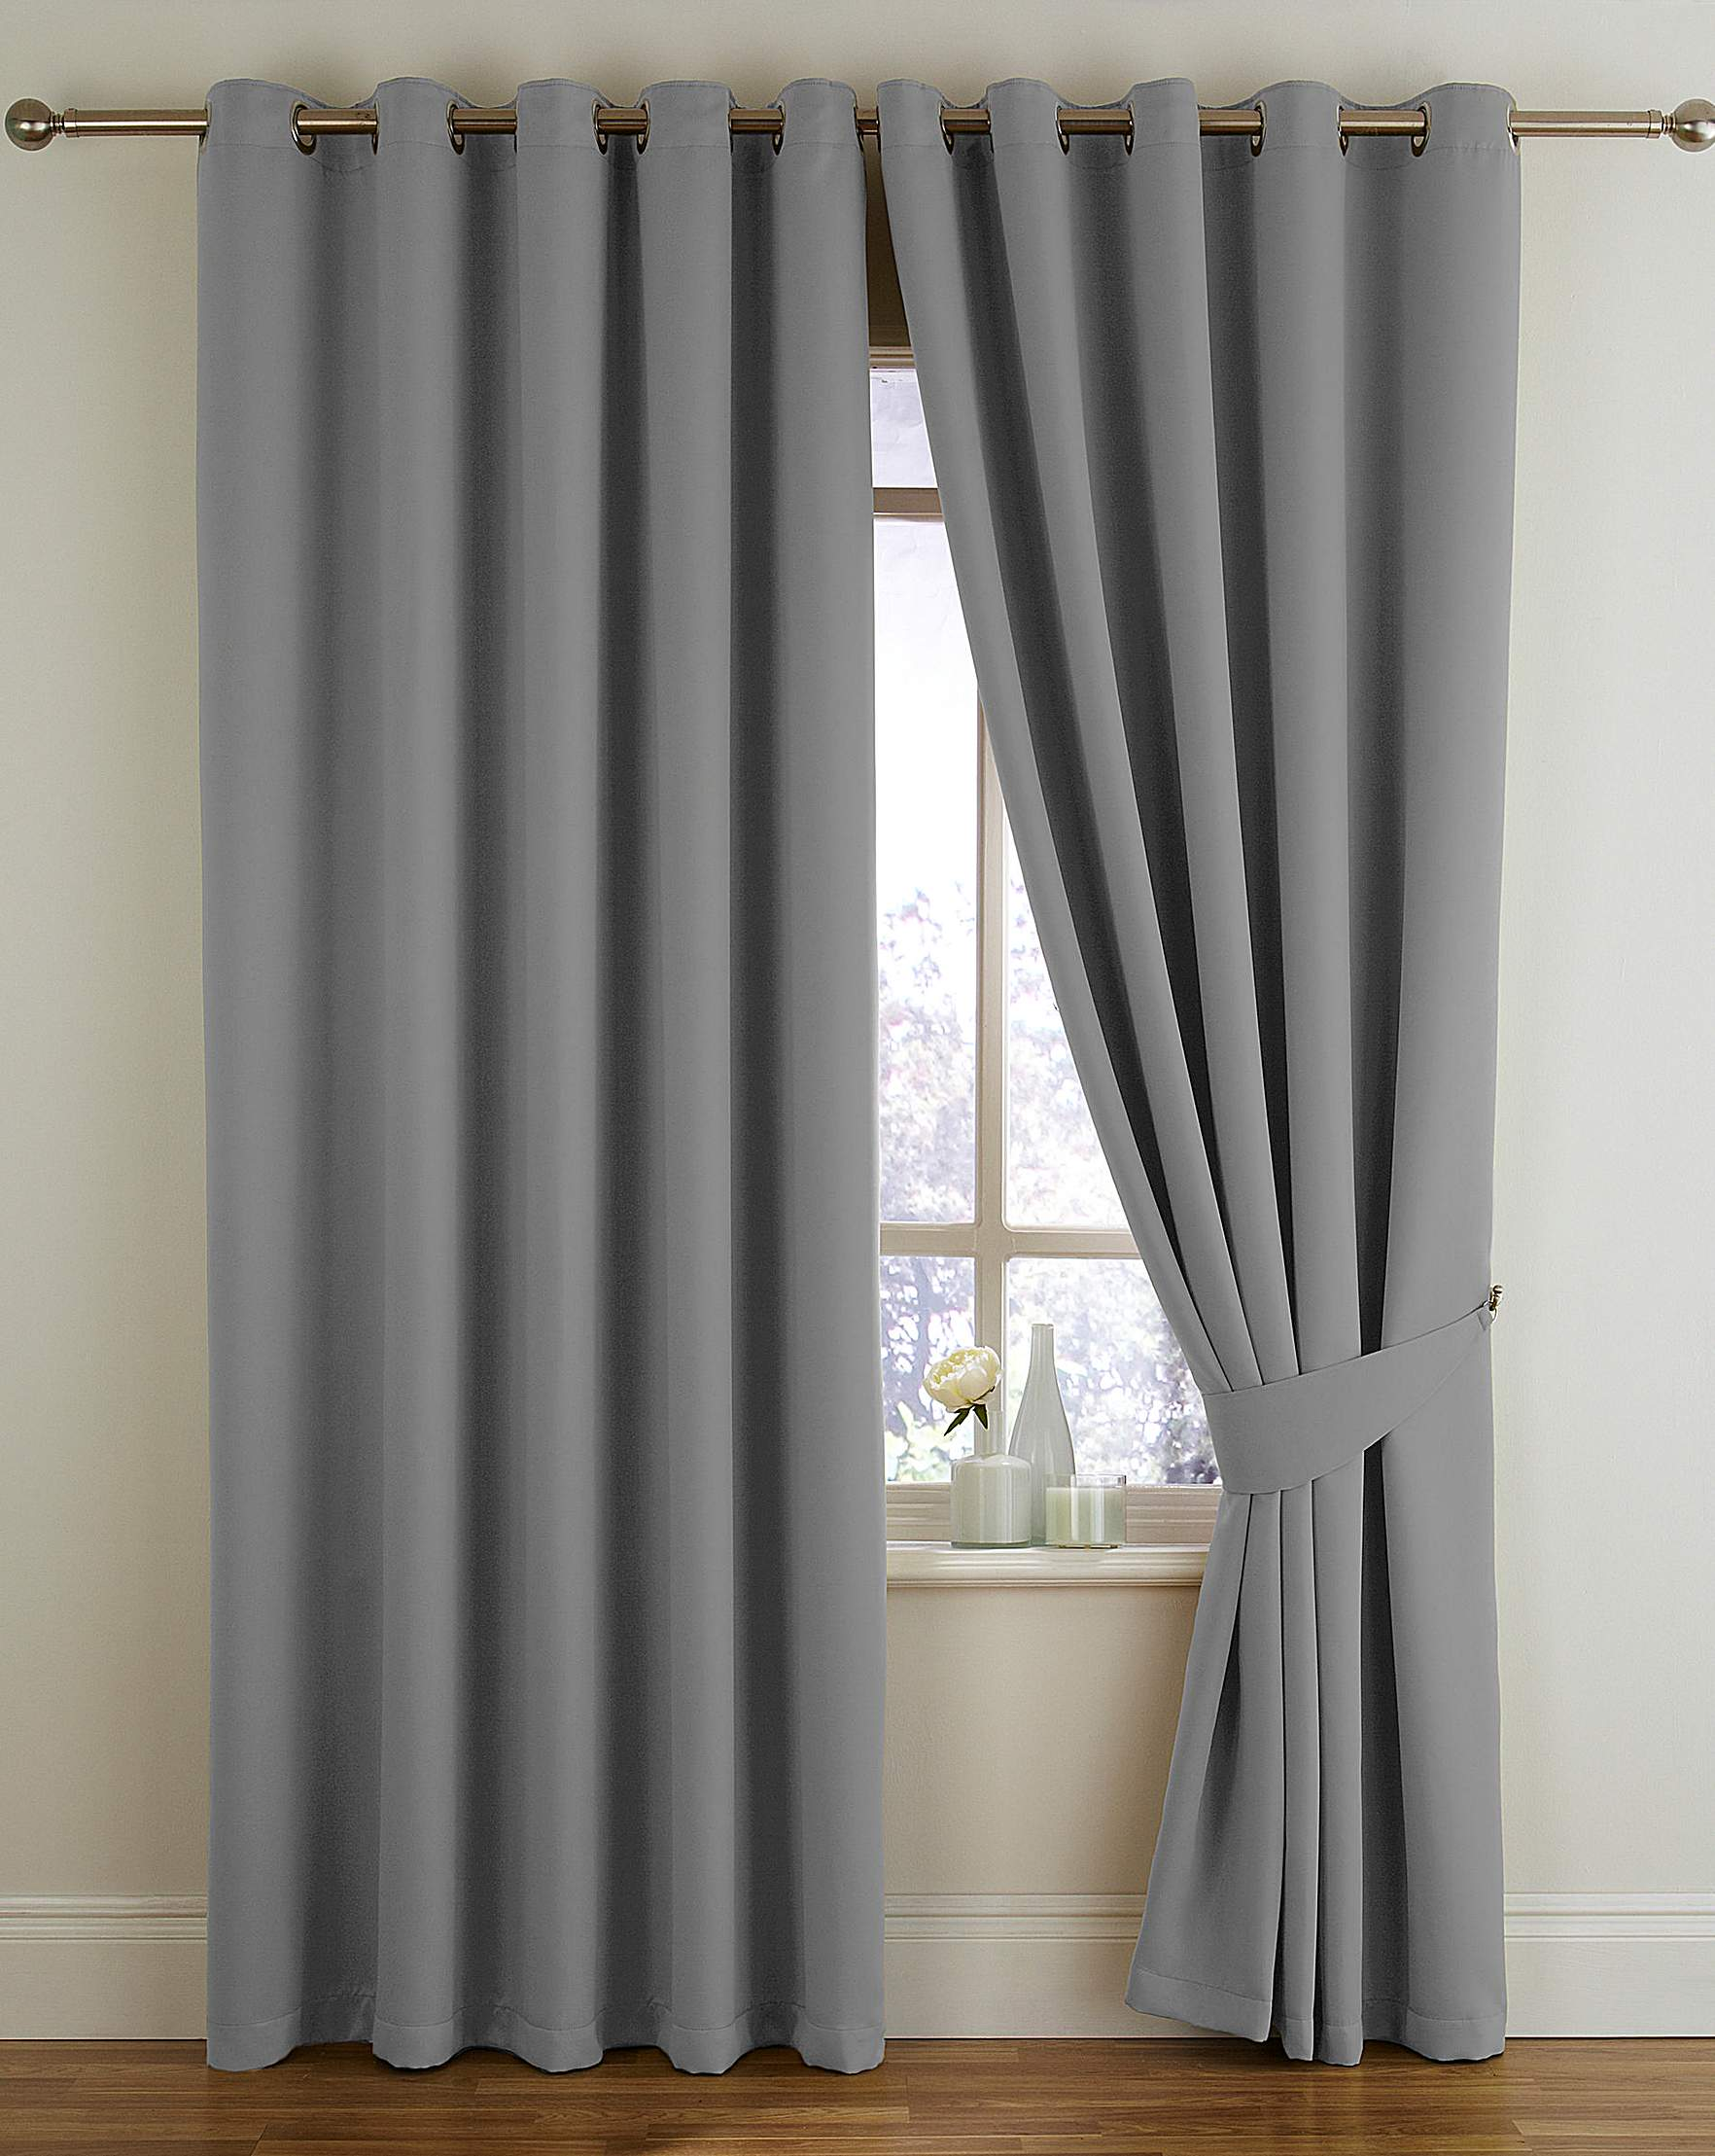 Green bedroom curtains - Woven Blackout Eyelet Curtains